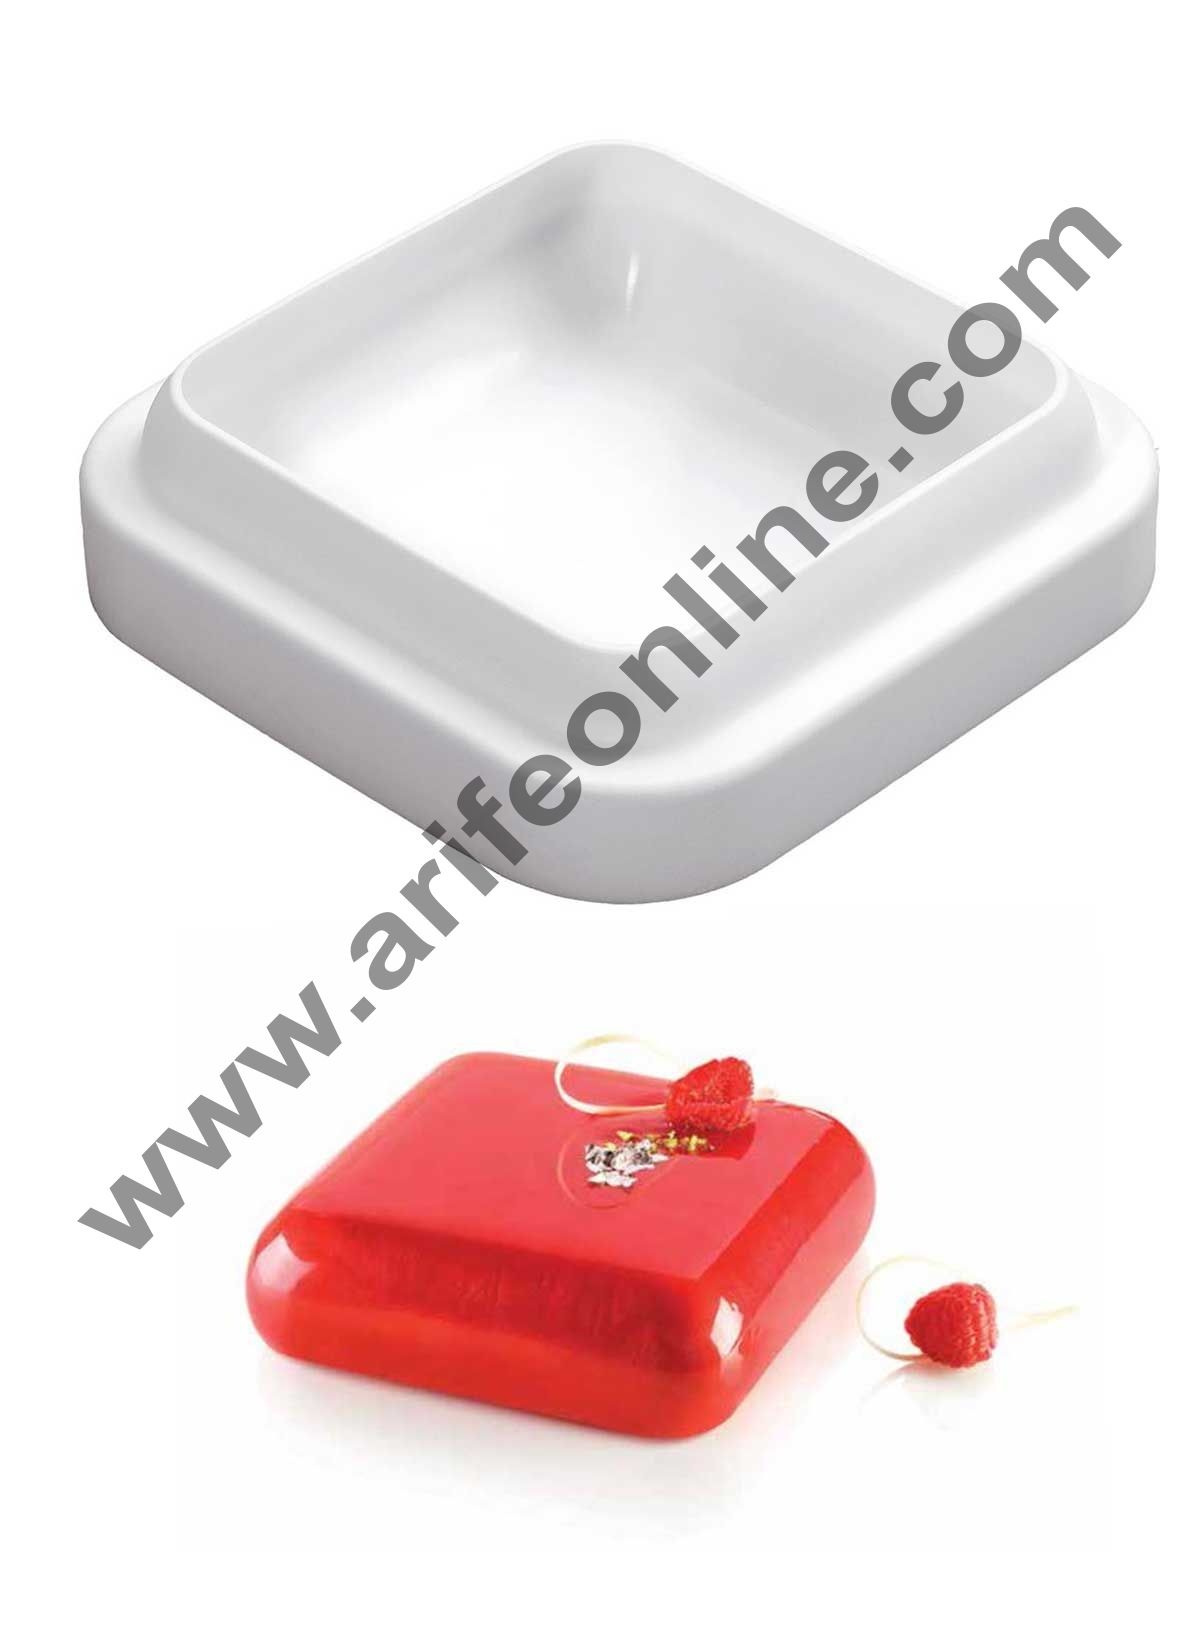 Cake Decor Silicon Rounded Square Design Cake Mould Mousse Cake Mould Silicon Moulds